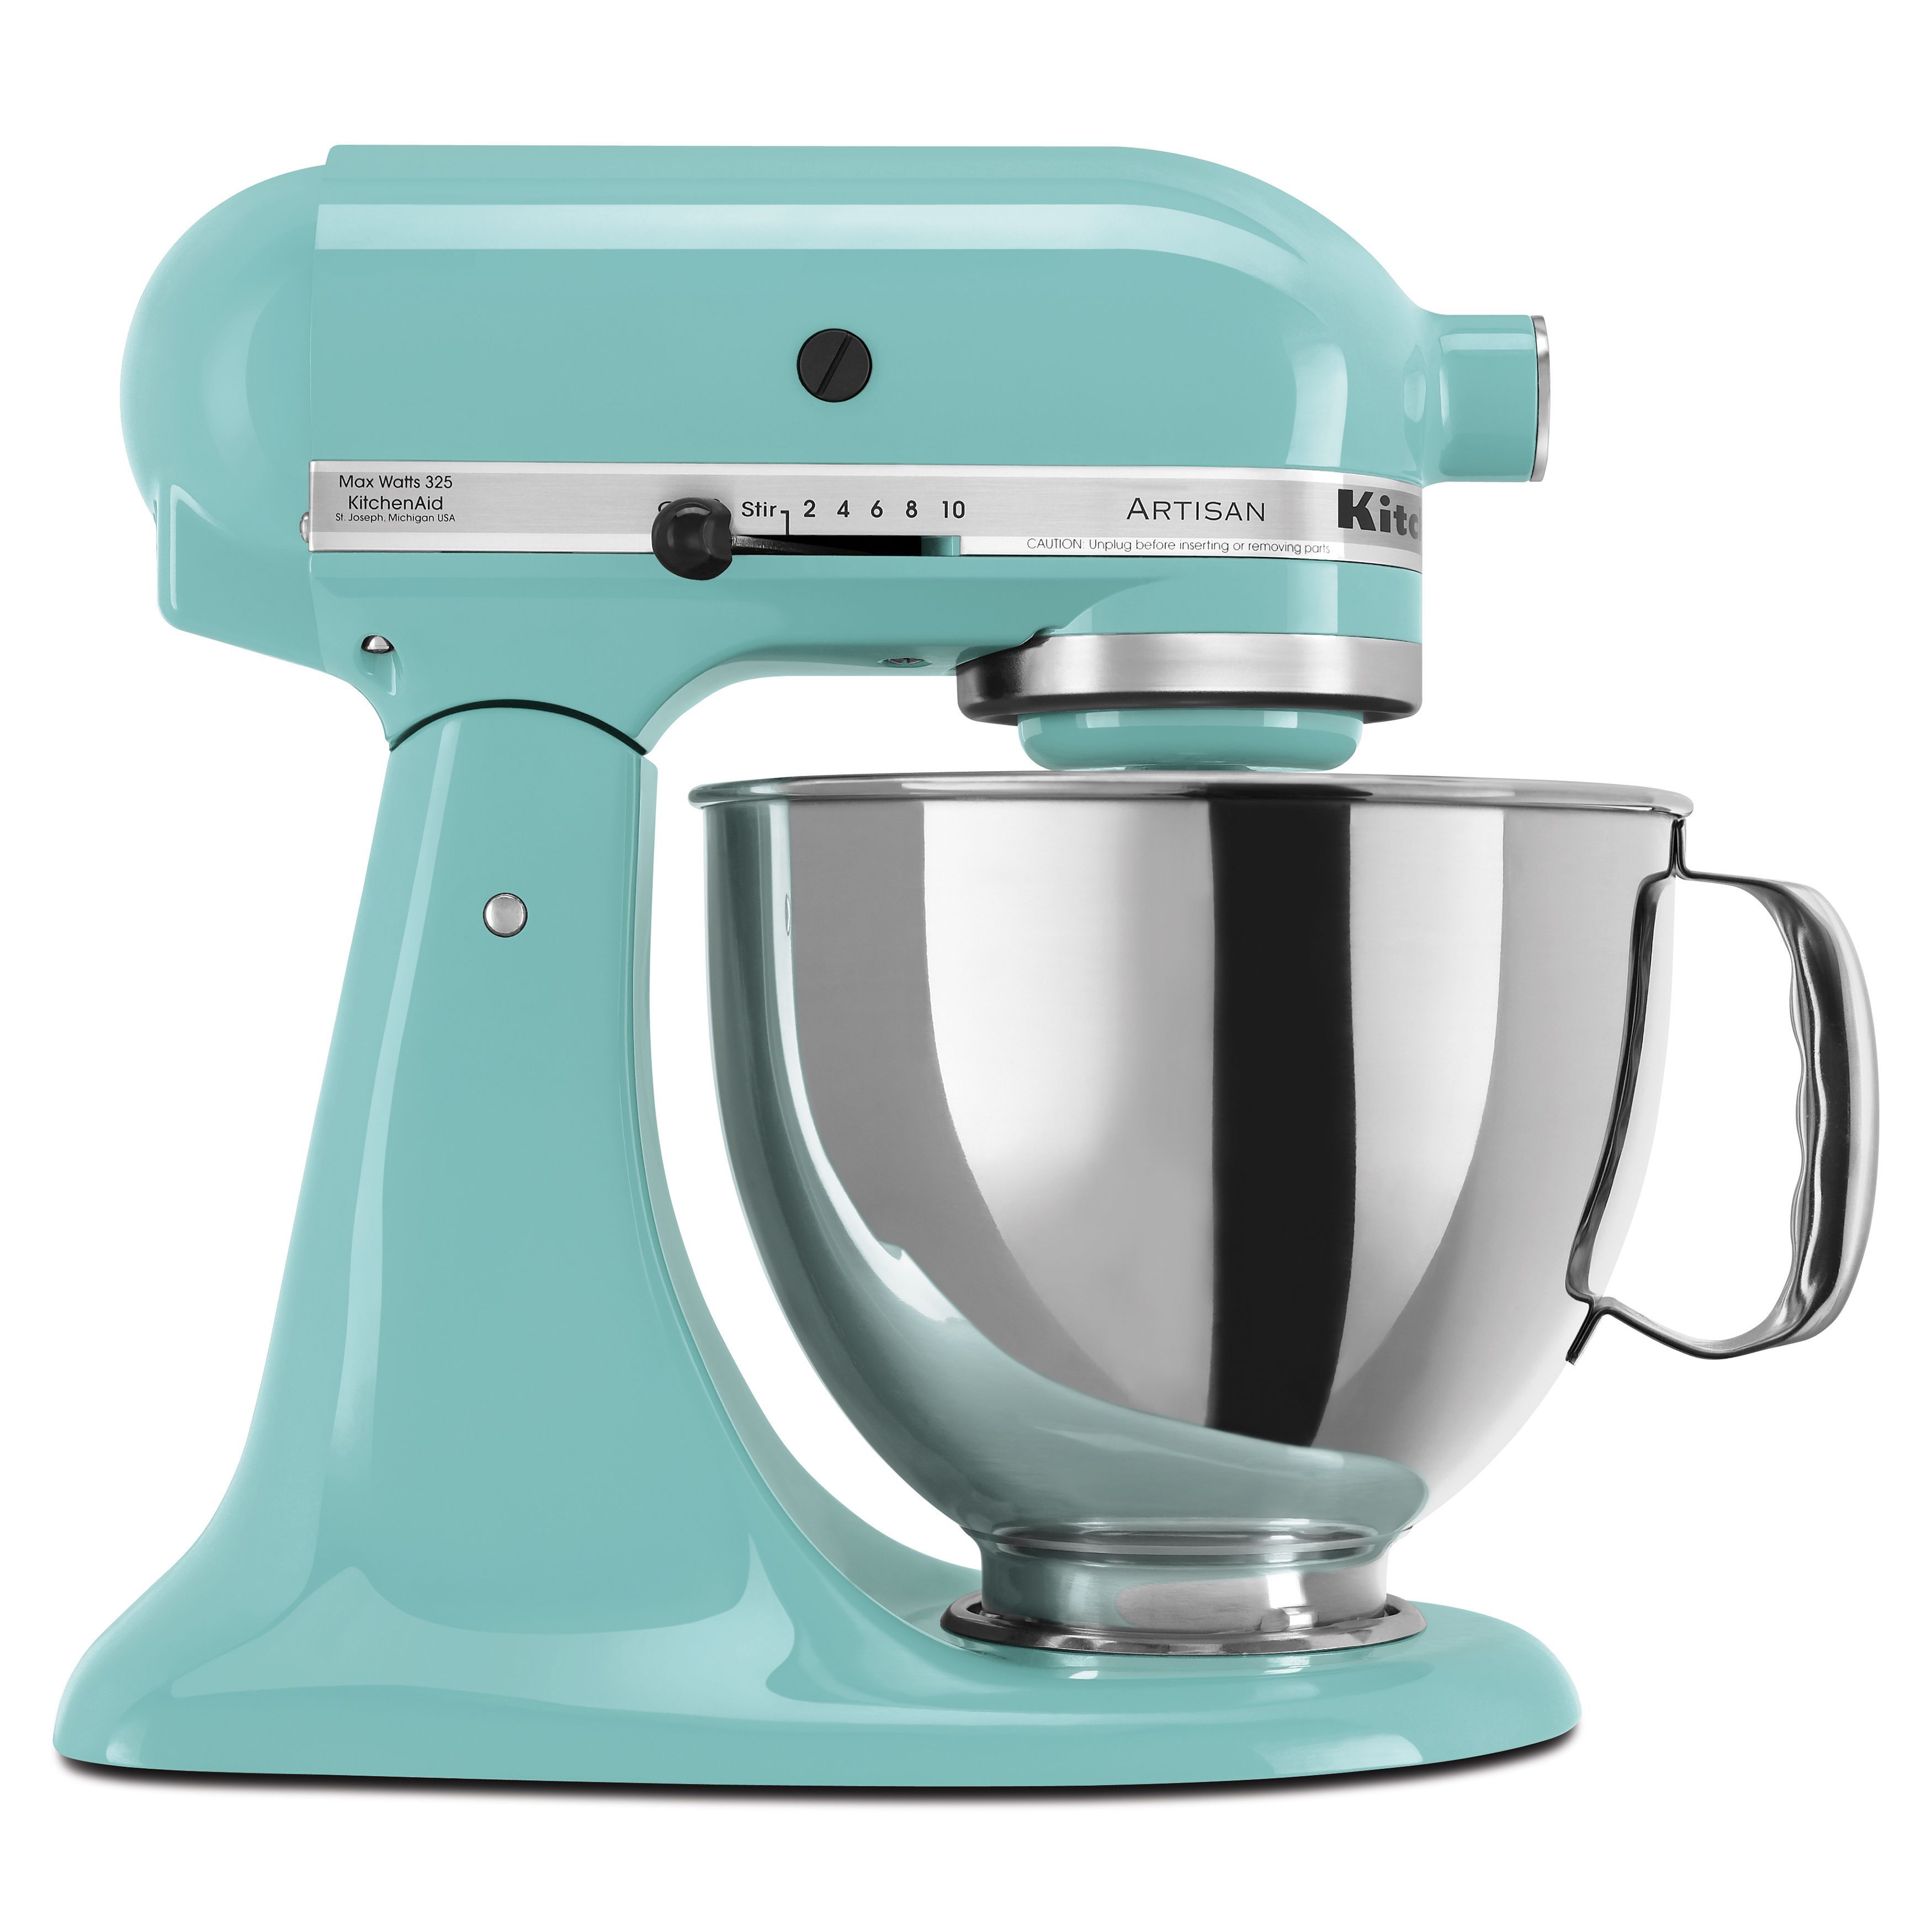 This Artisan Series 5-quart mixer from KitchenAid is a substantial ...